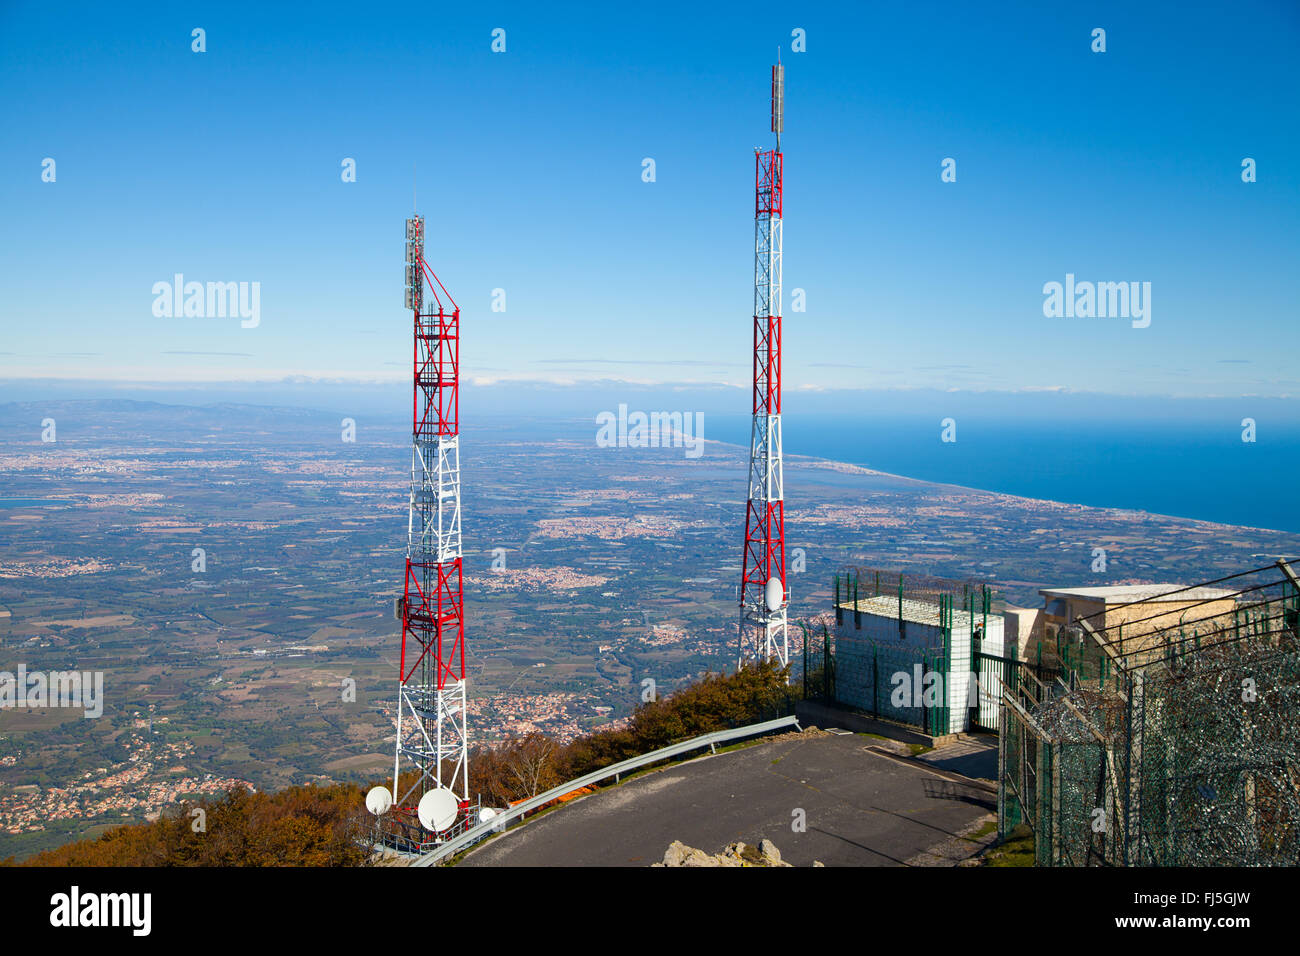 The summit masts of Puig Neulós, in the eastern Pyrenees, France. - Stock Image